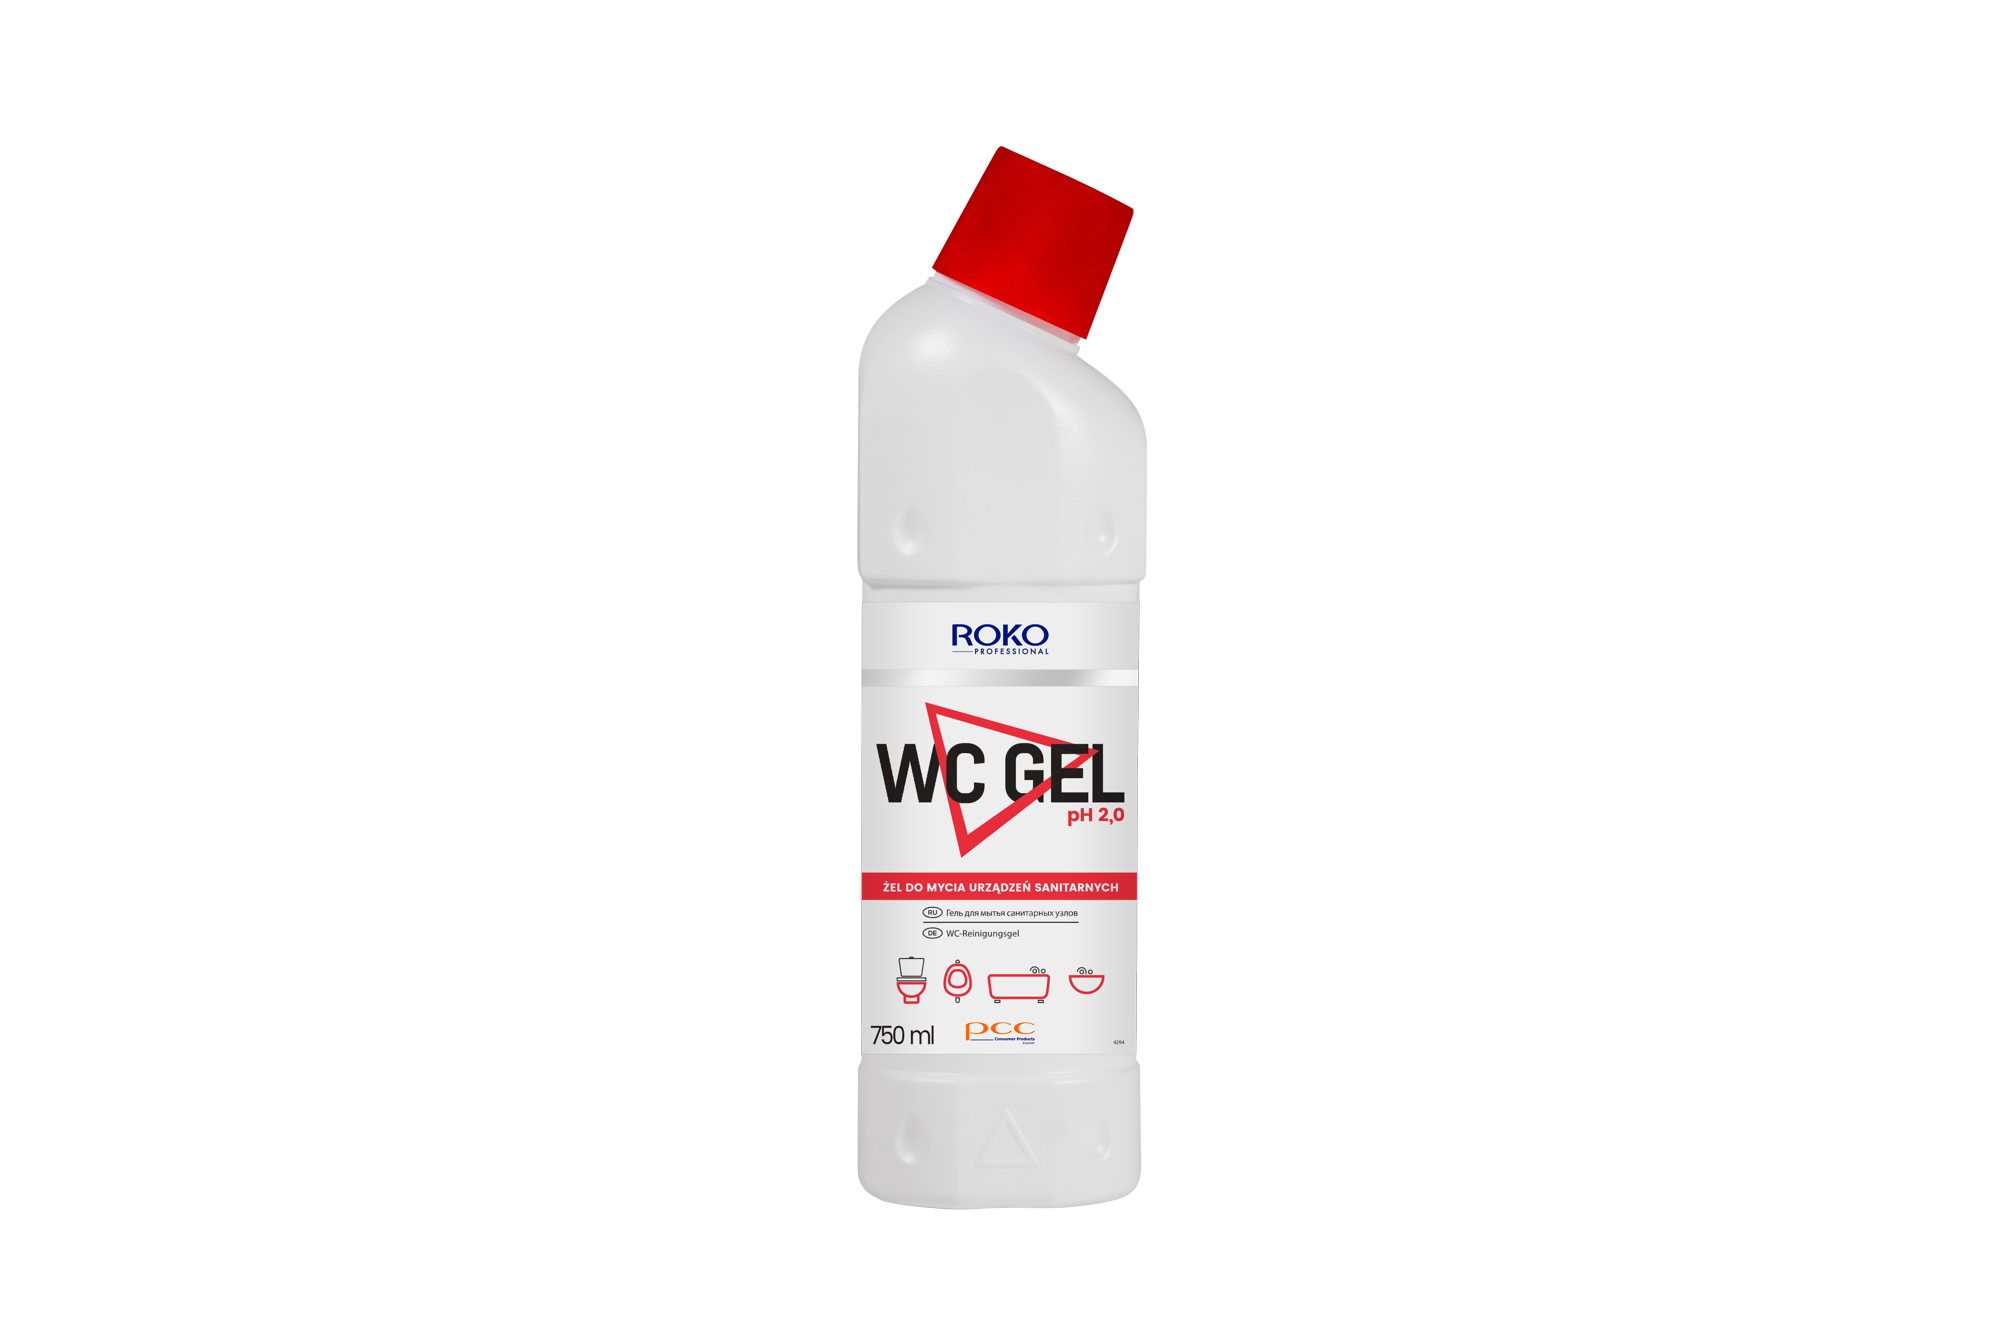 ROKO PROFESSIONAL WC GEL